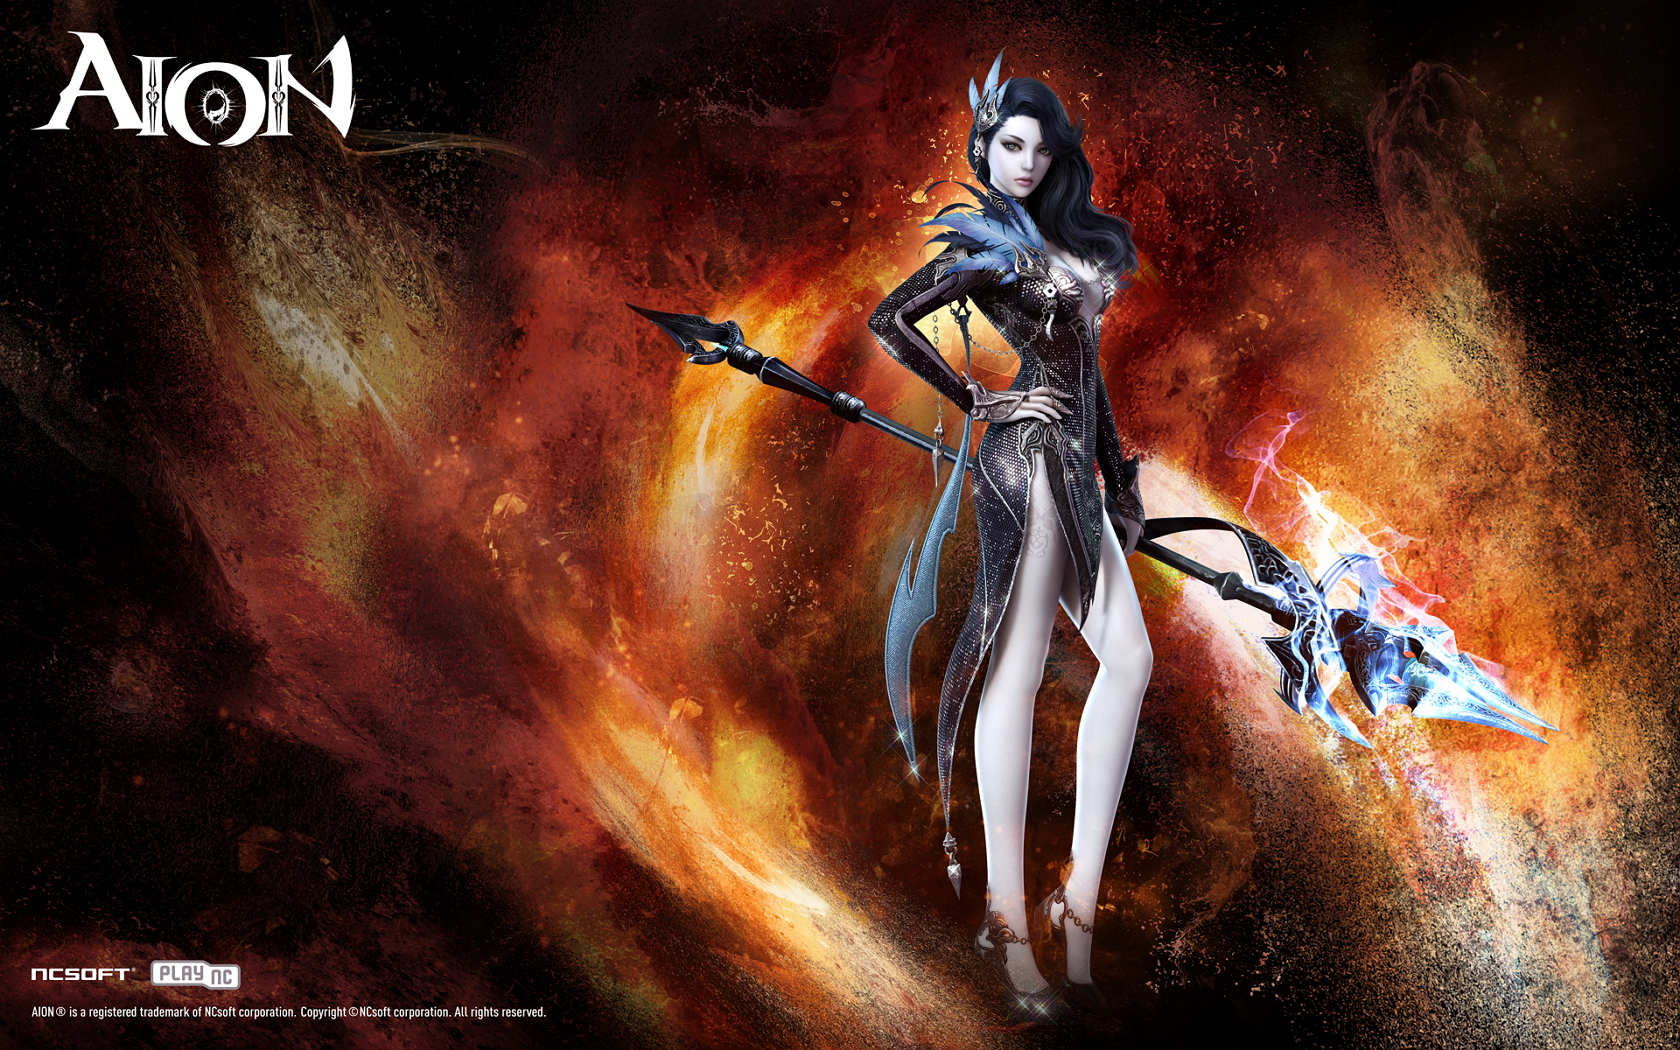 aion 4 0 wallpaper chanter Aion Life 1680x1050